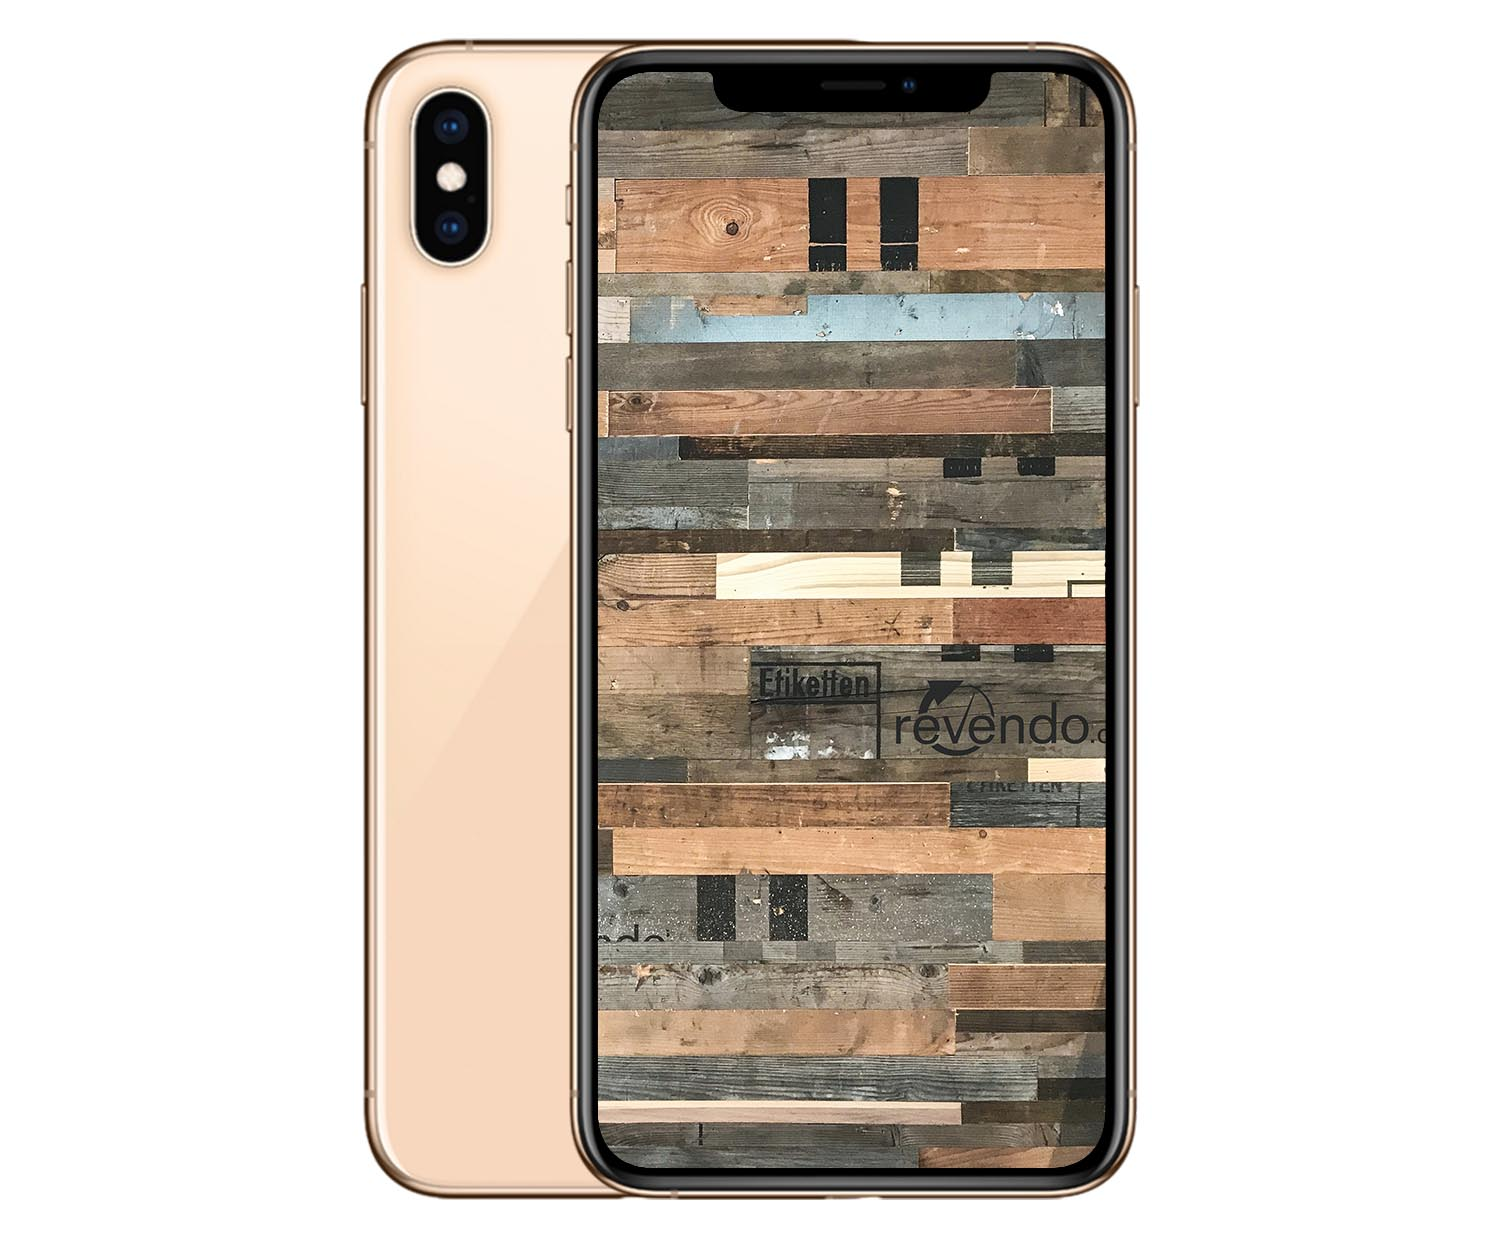 Iphone xs max gold kaufen